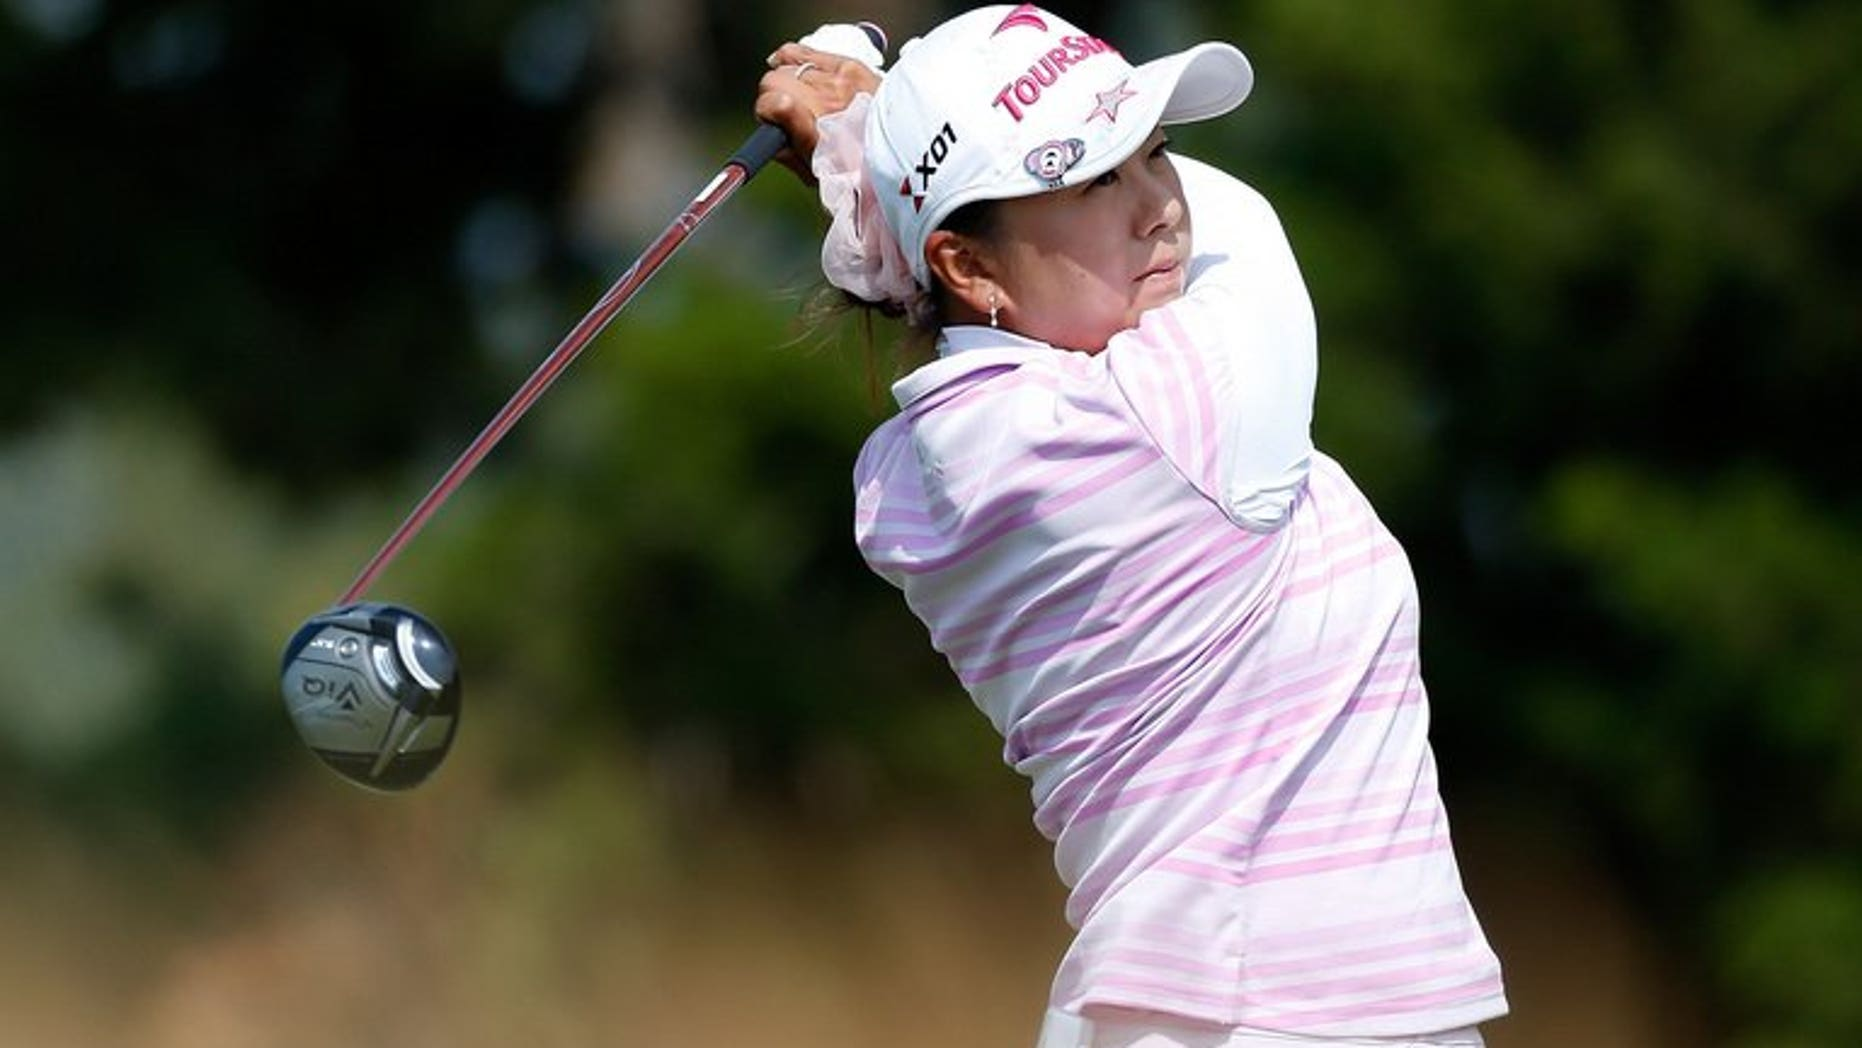 Miki Saiki of Japan watches her tee shot on the 15th hole at Sebonack Golf Club on June 28, 2013 in Southampton, New York. Saiki had a bundle of new experiences as she surged into the halfway lead on nine under par at the women's British Open at St Andrews on Friday.